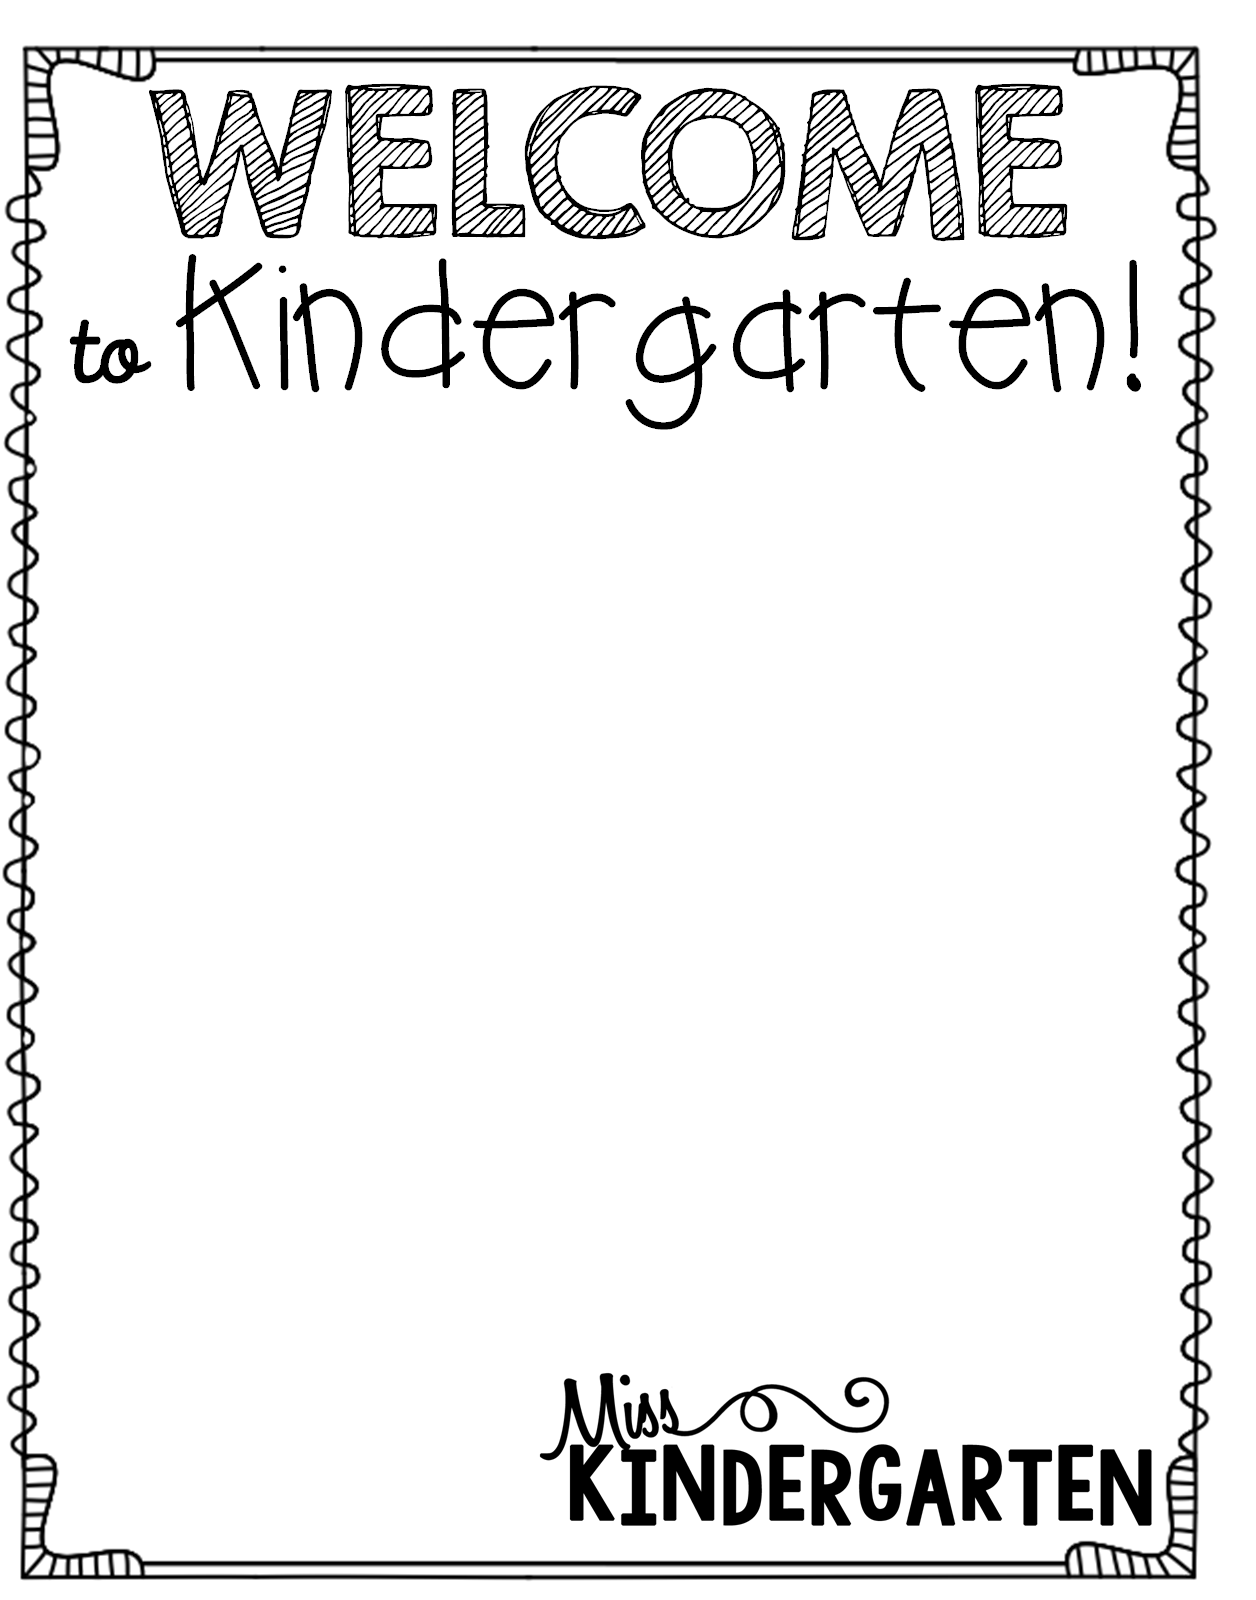 Getting Organized New Student Bags Welcome To Kindergarten Letter Download An Editable